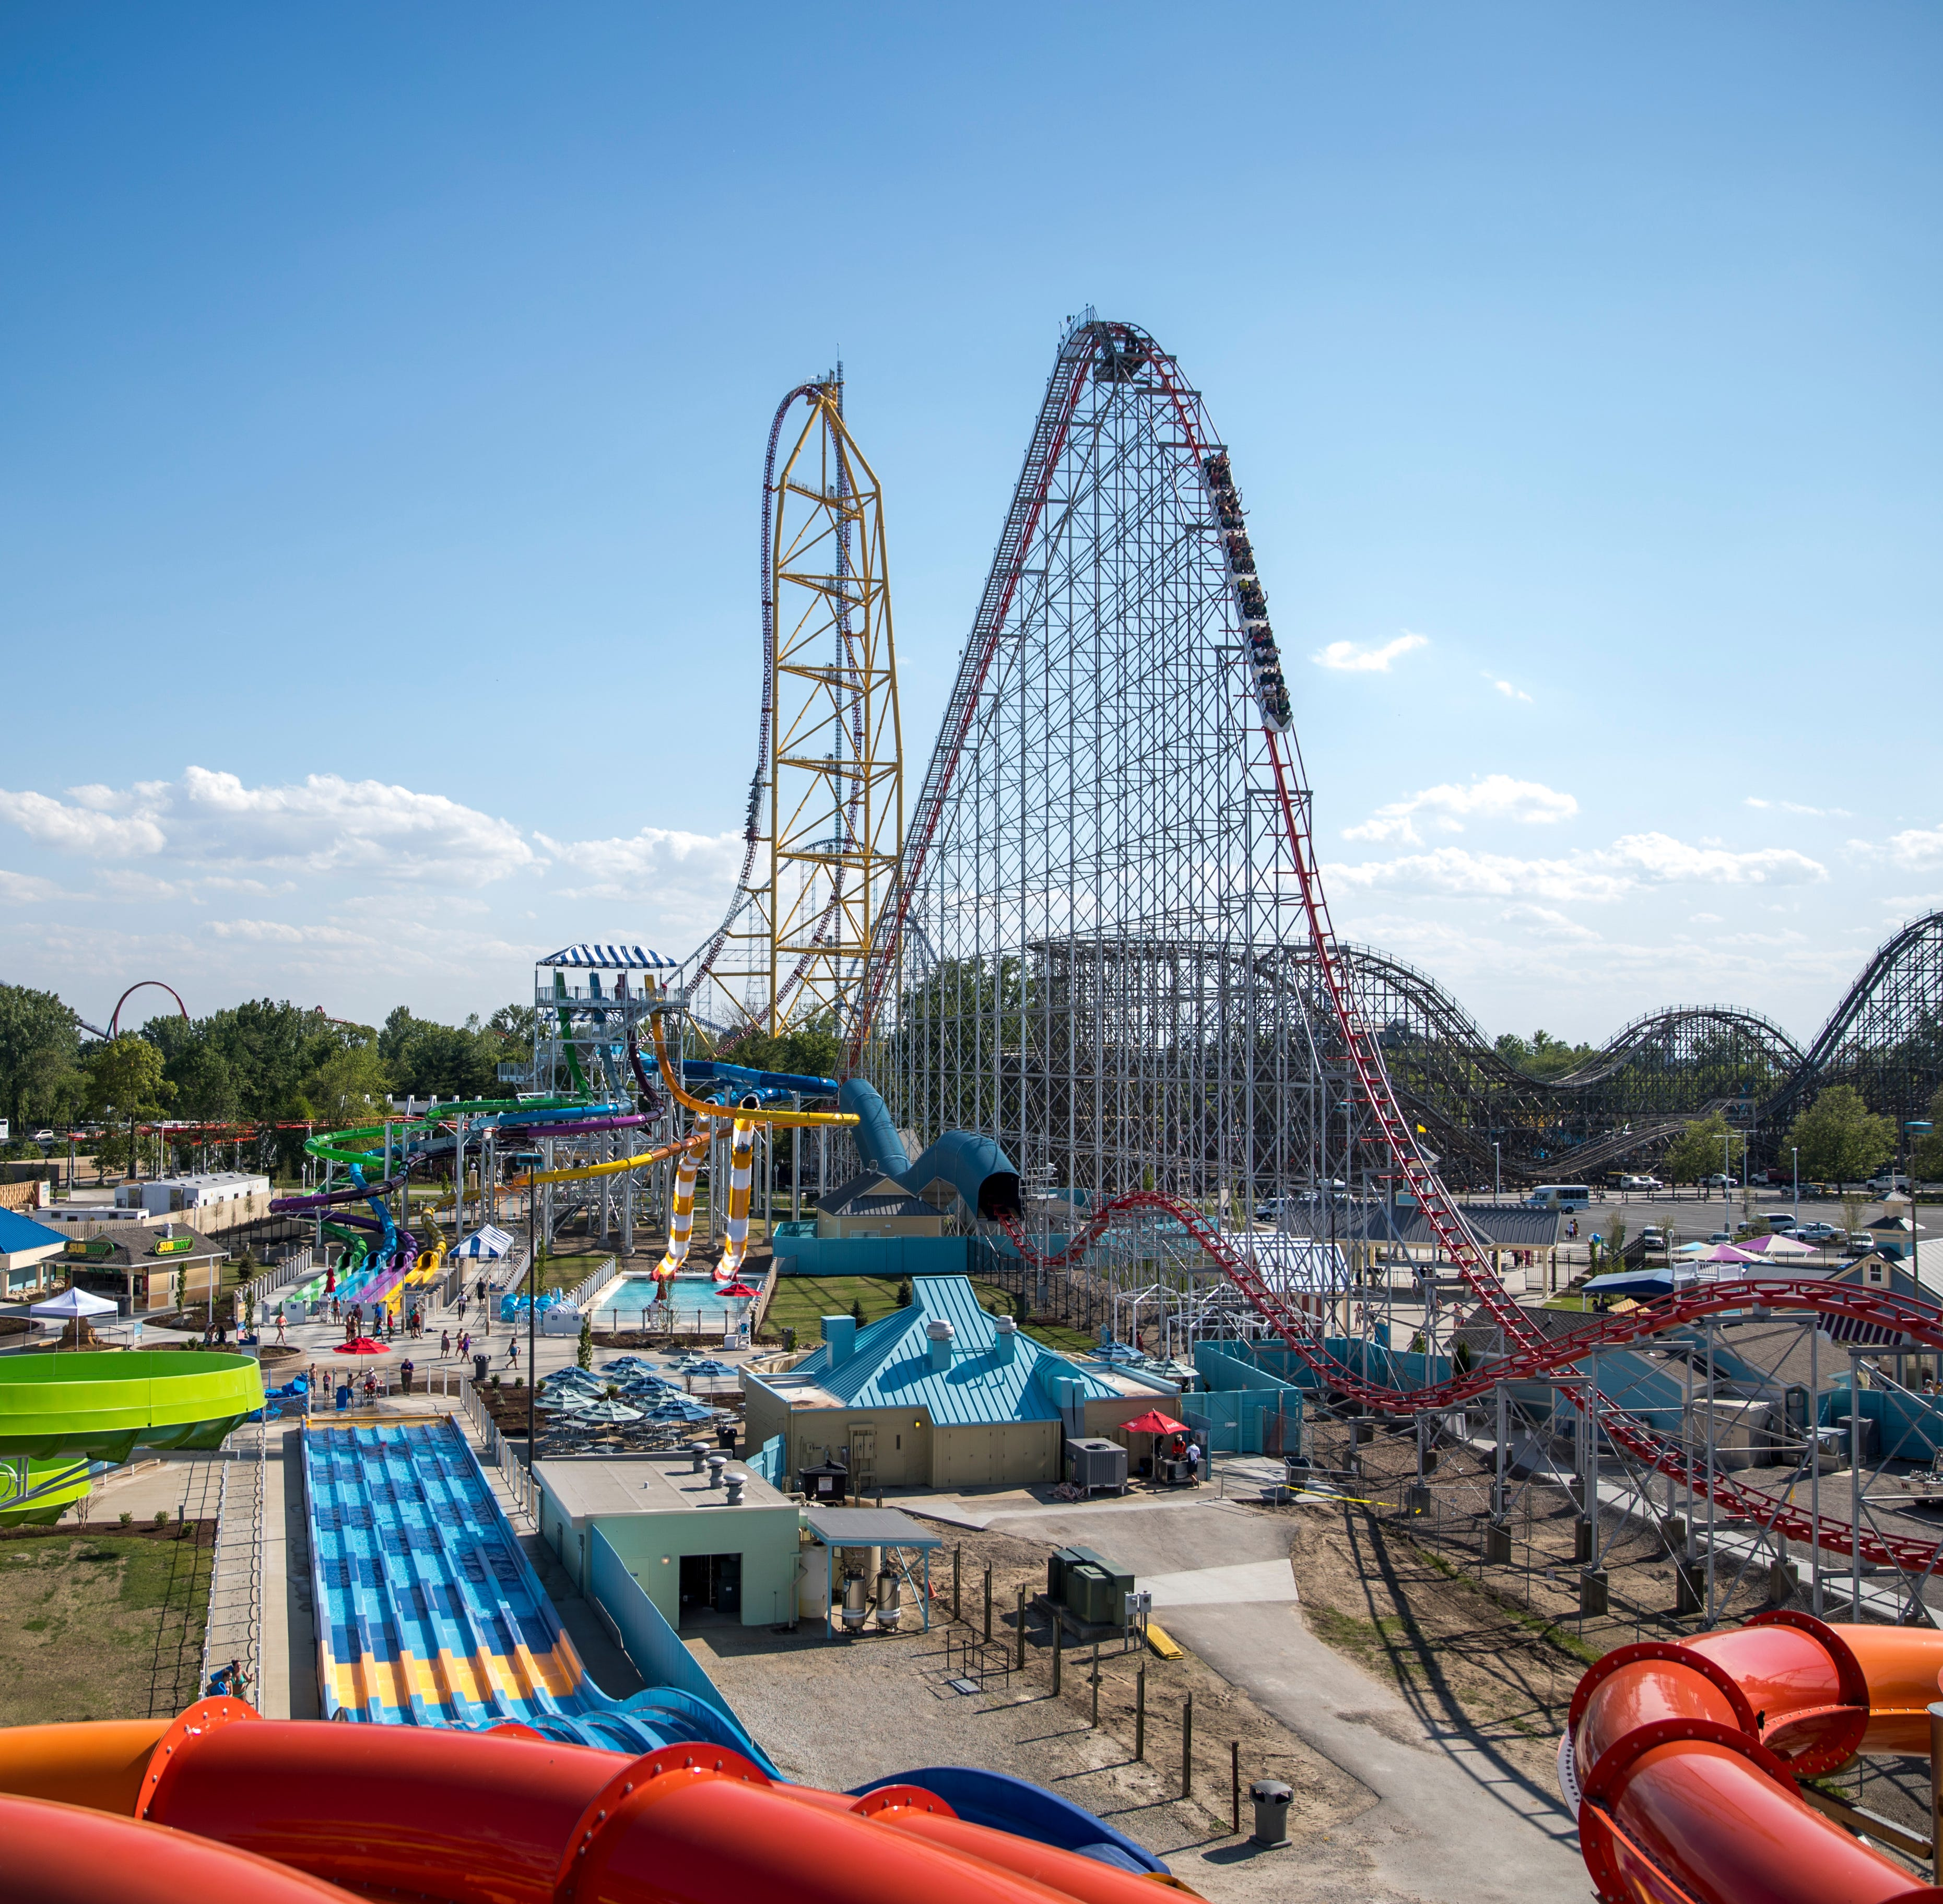 Monster trucks, escape rooms and more: What's new at Cedar Point in 2019?